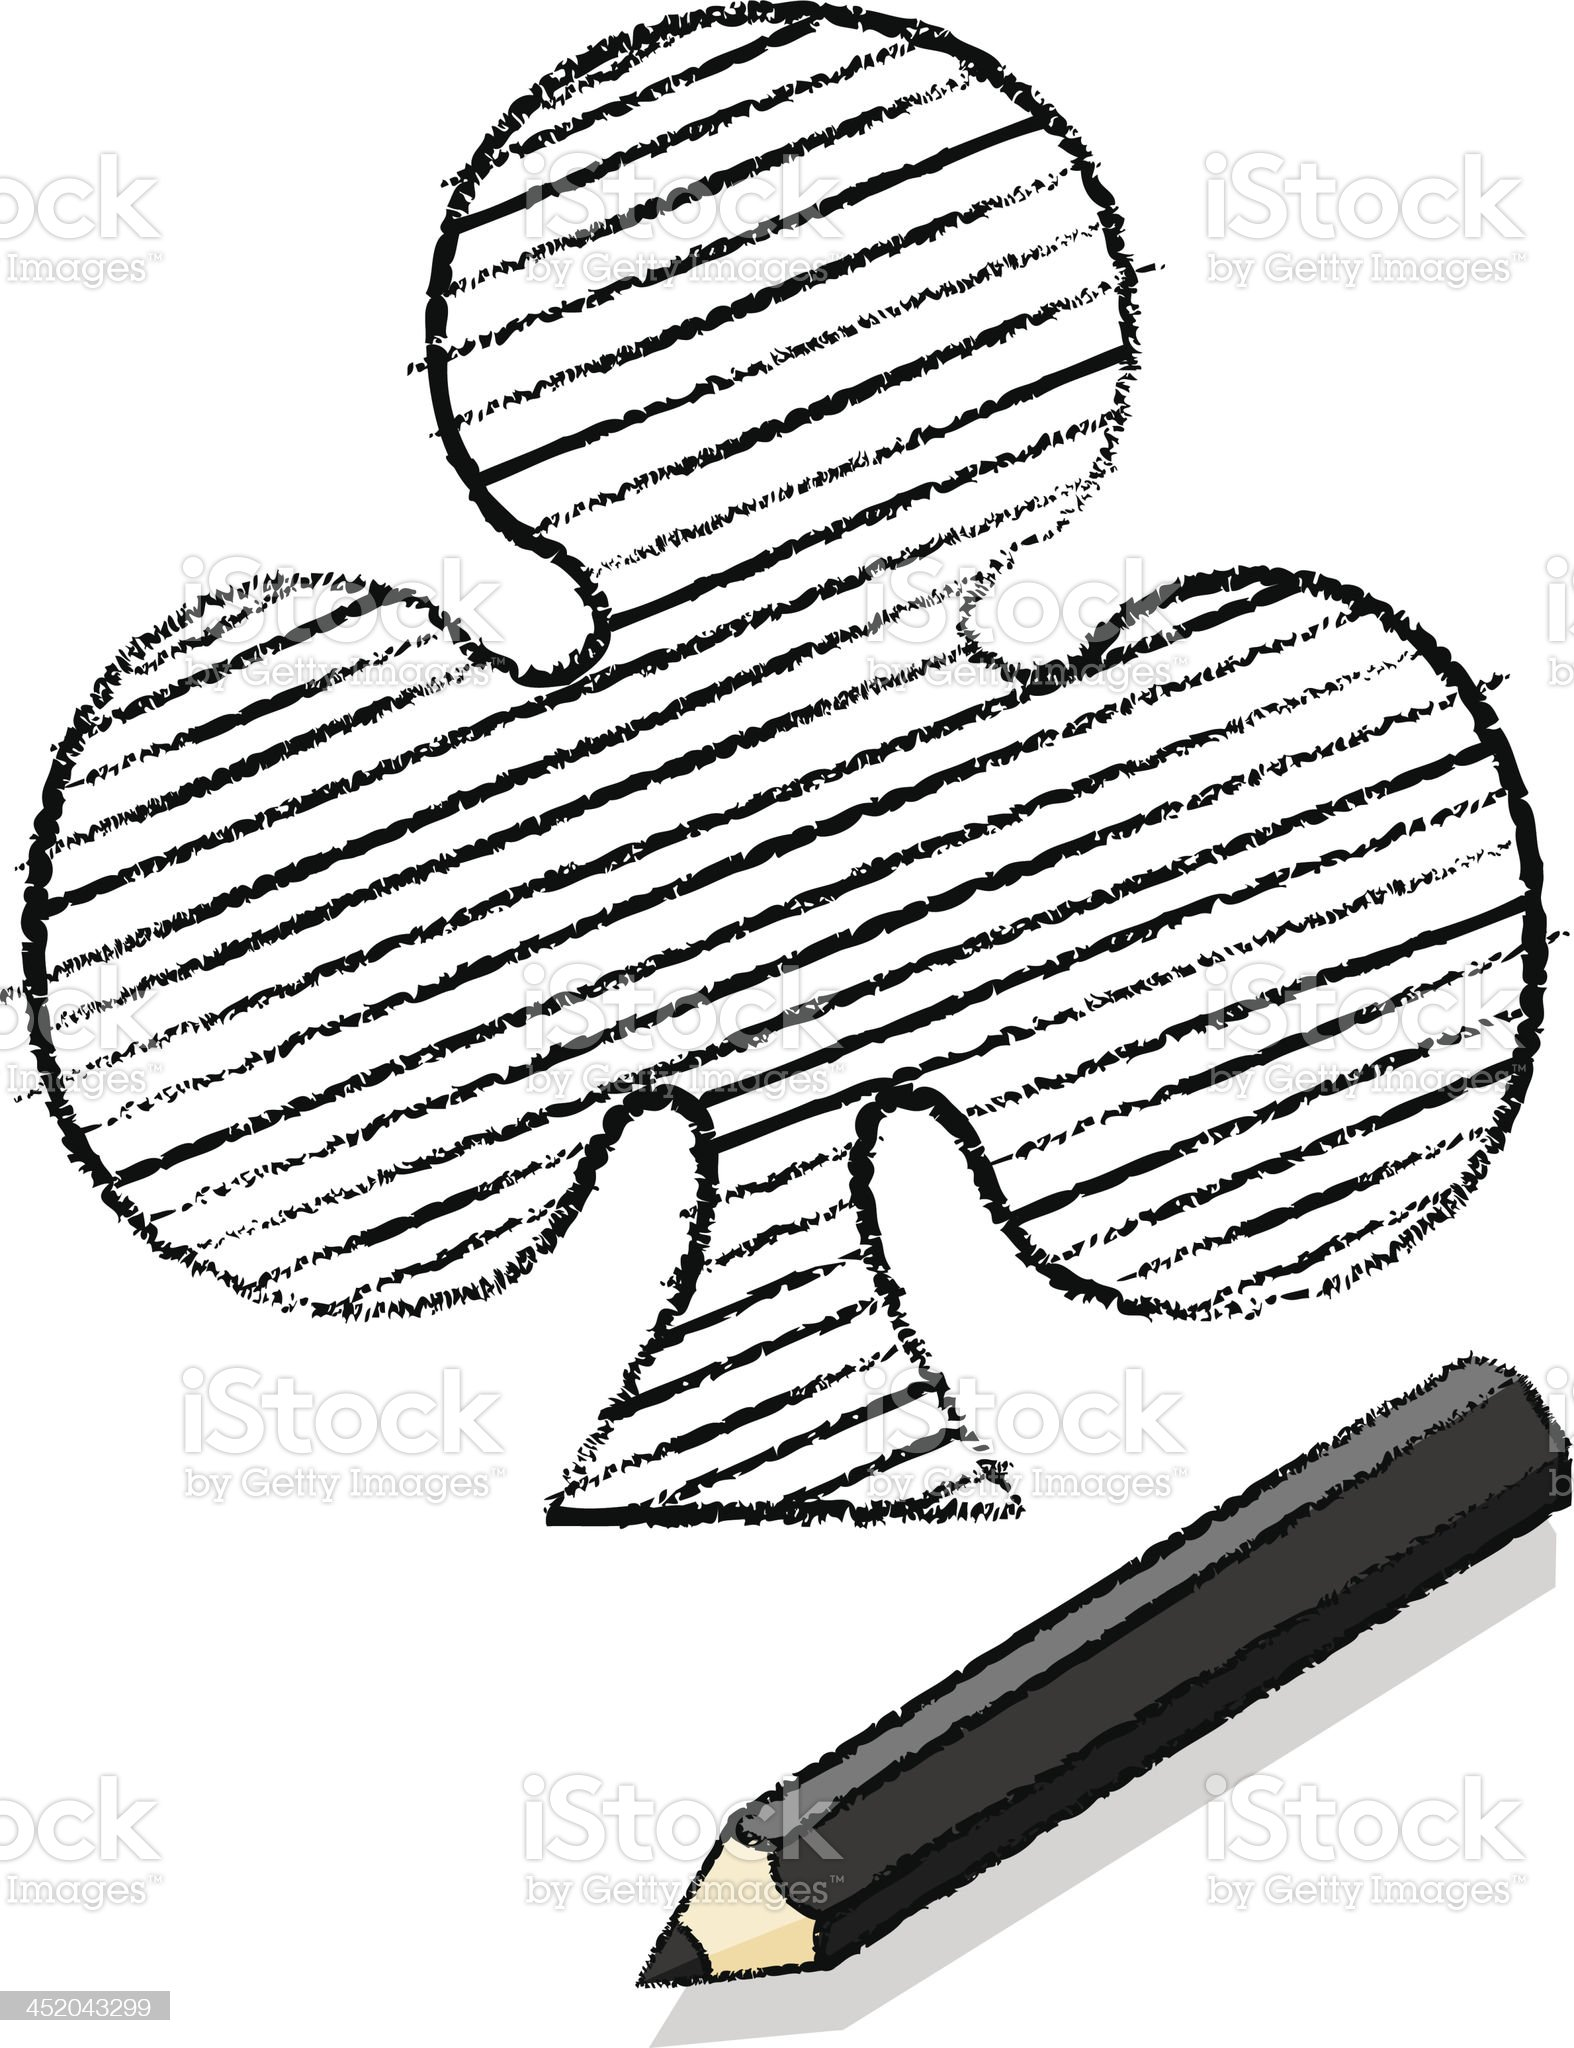 Ace of Clubs Playing Card Icon Drawn by Black Pencil royalty-free stock vector art